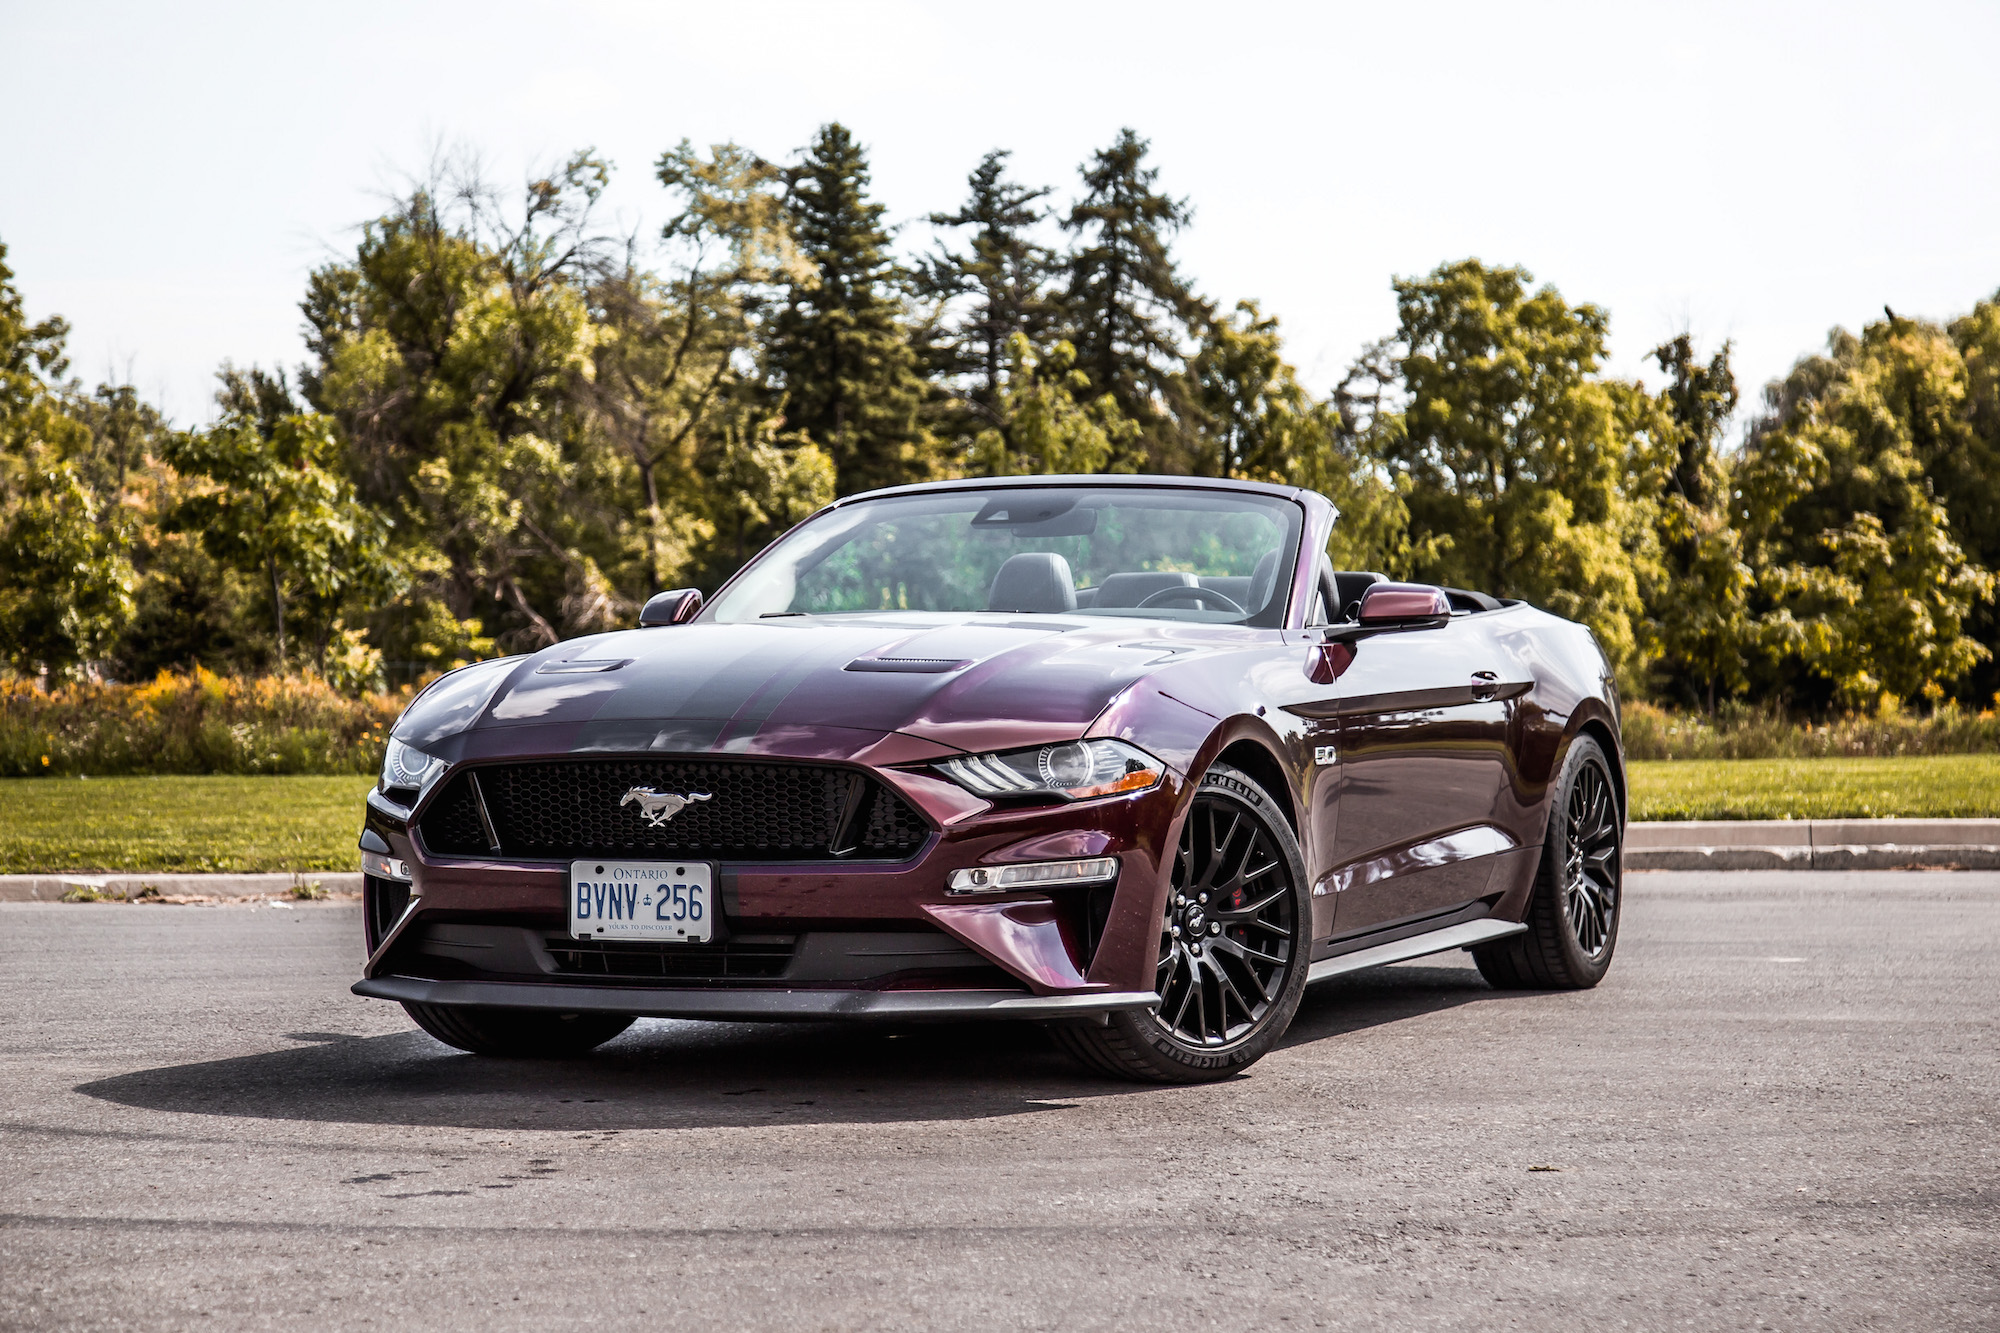 2018 ford mustang gt convertible purple red paint colour